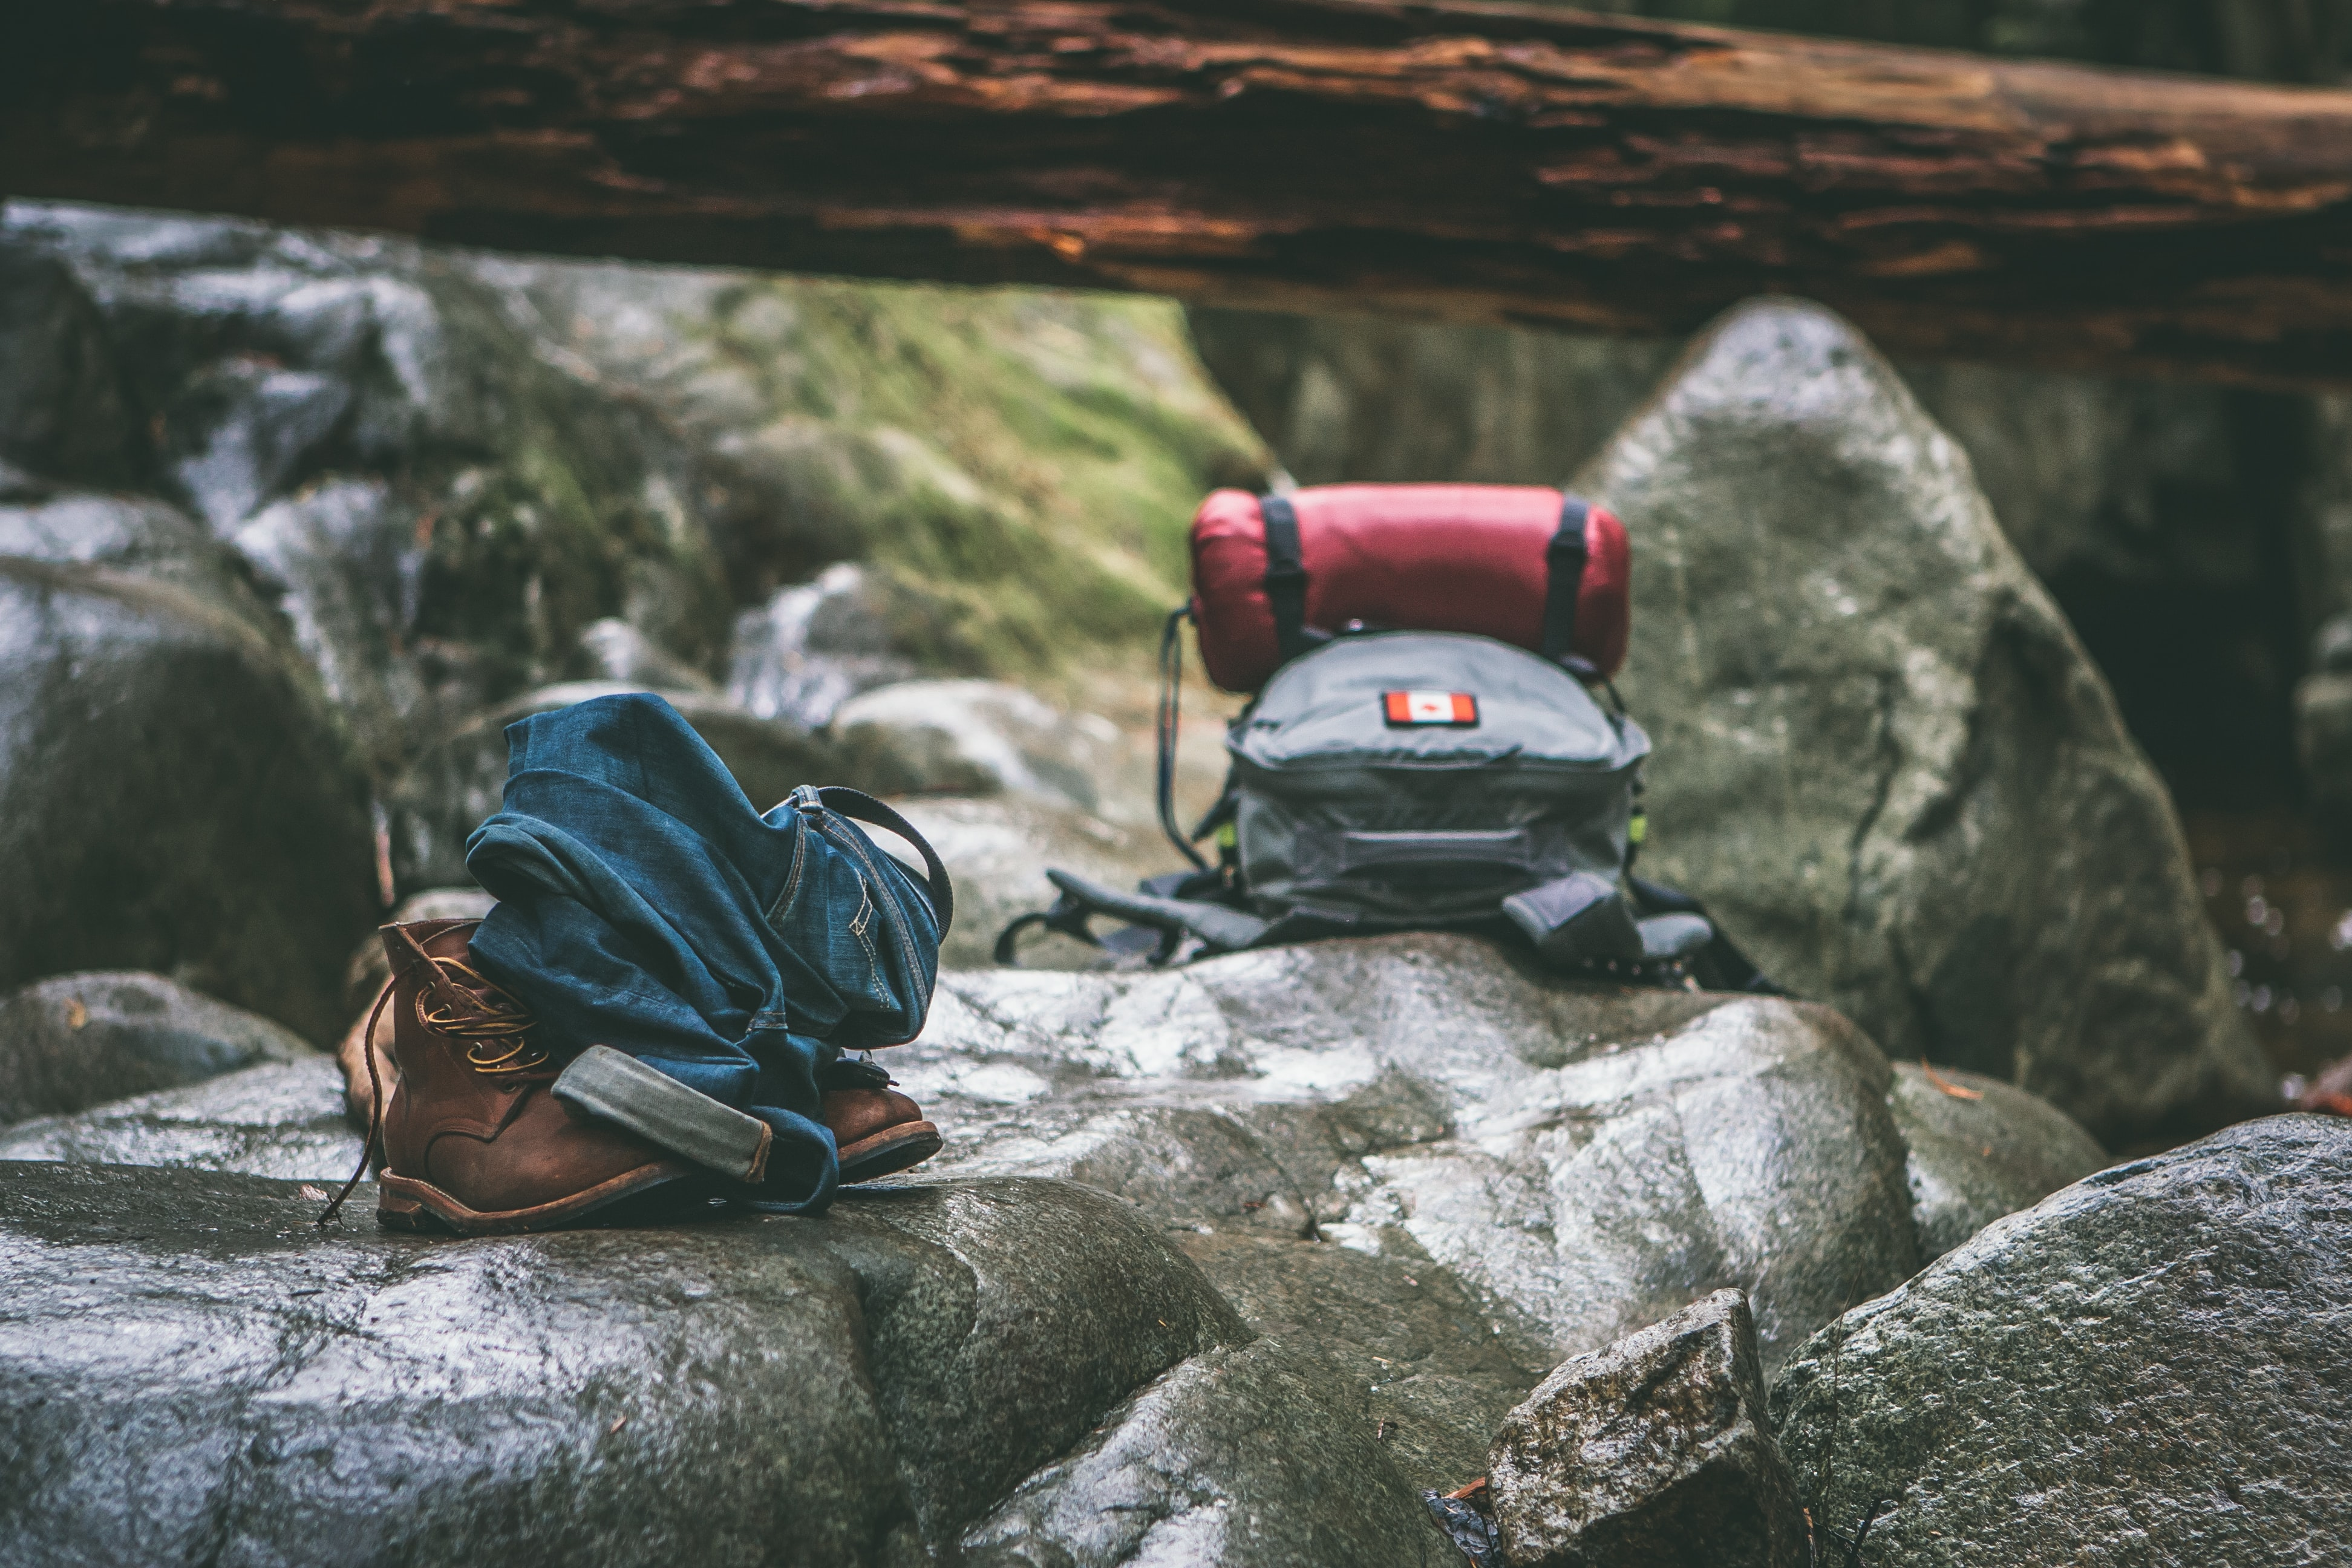 A backpack, sleeping bag, jeans, belt, and hiking boots on a rock in Cypress Falls Park